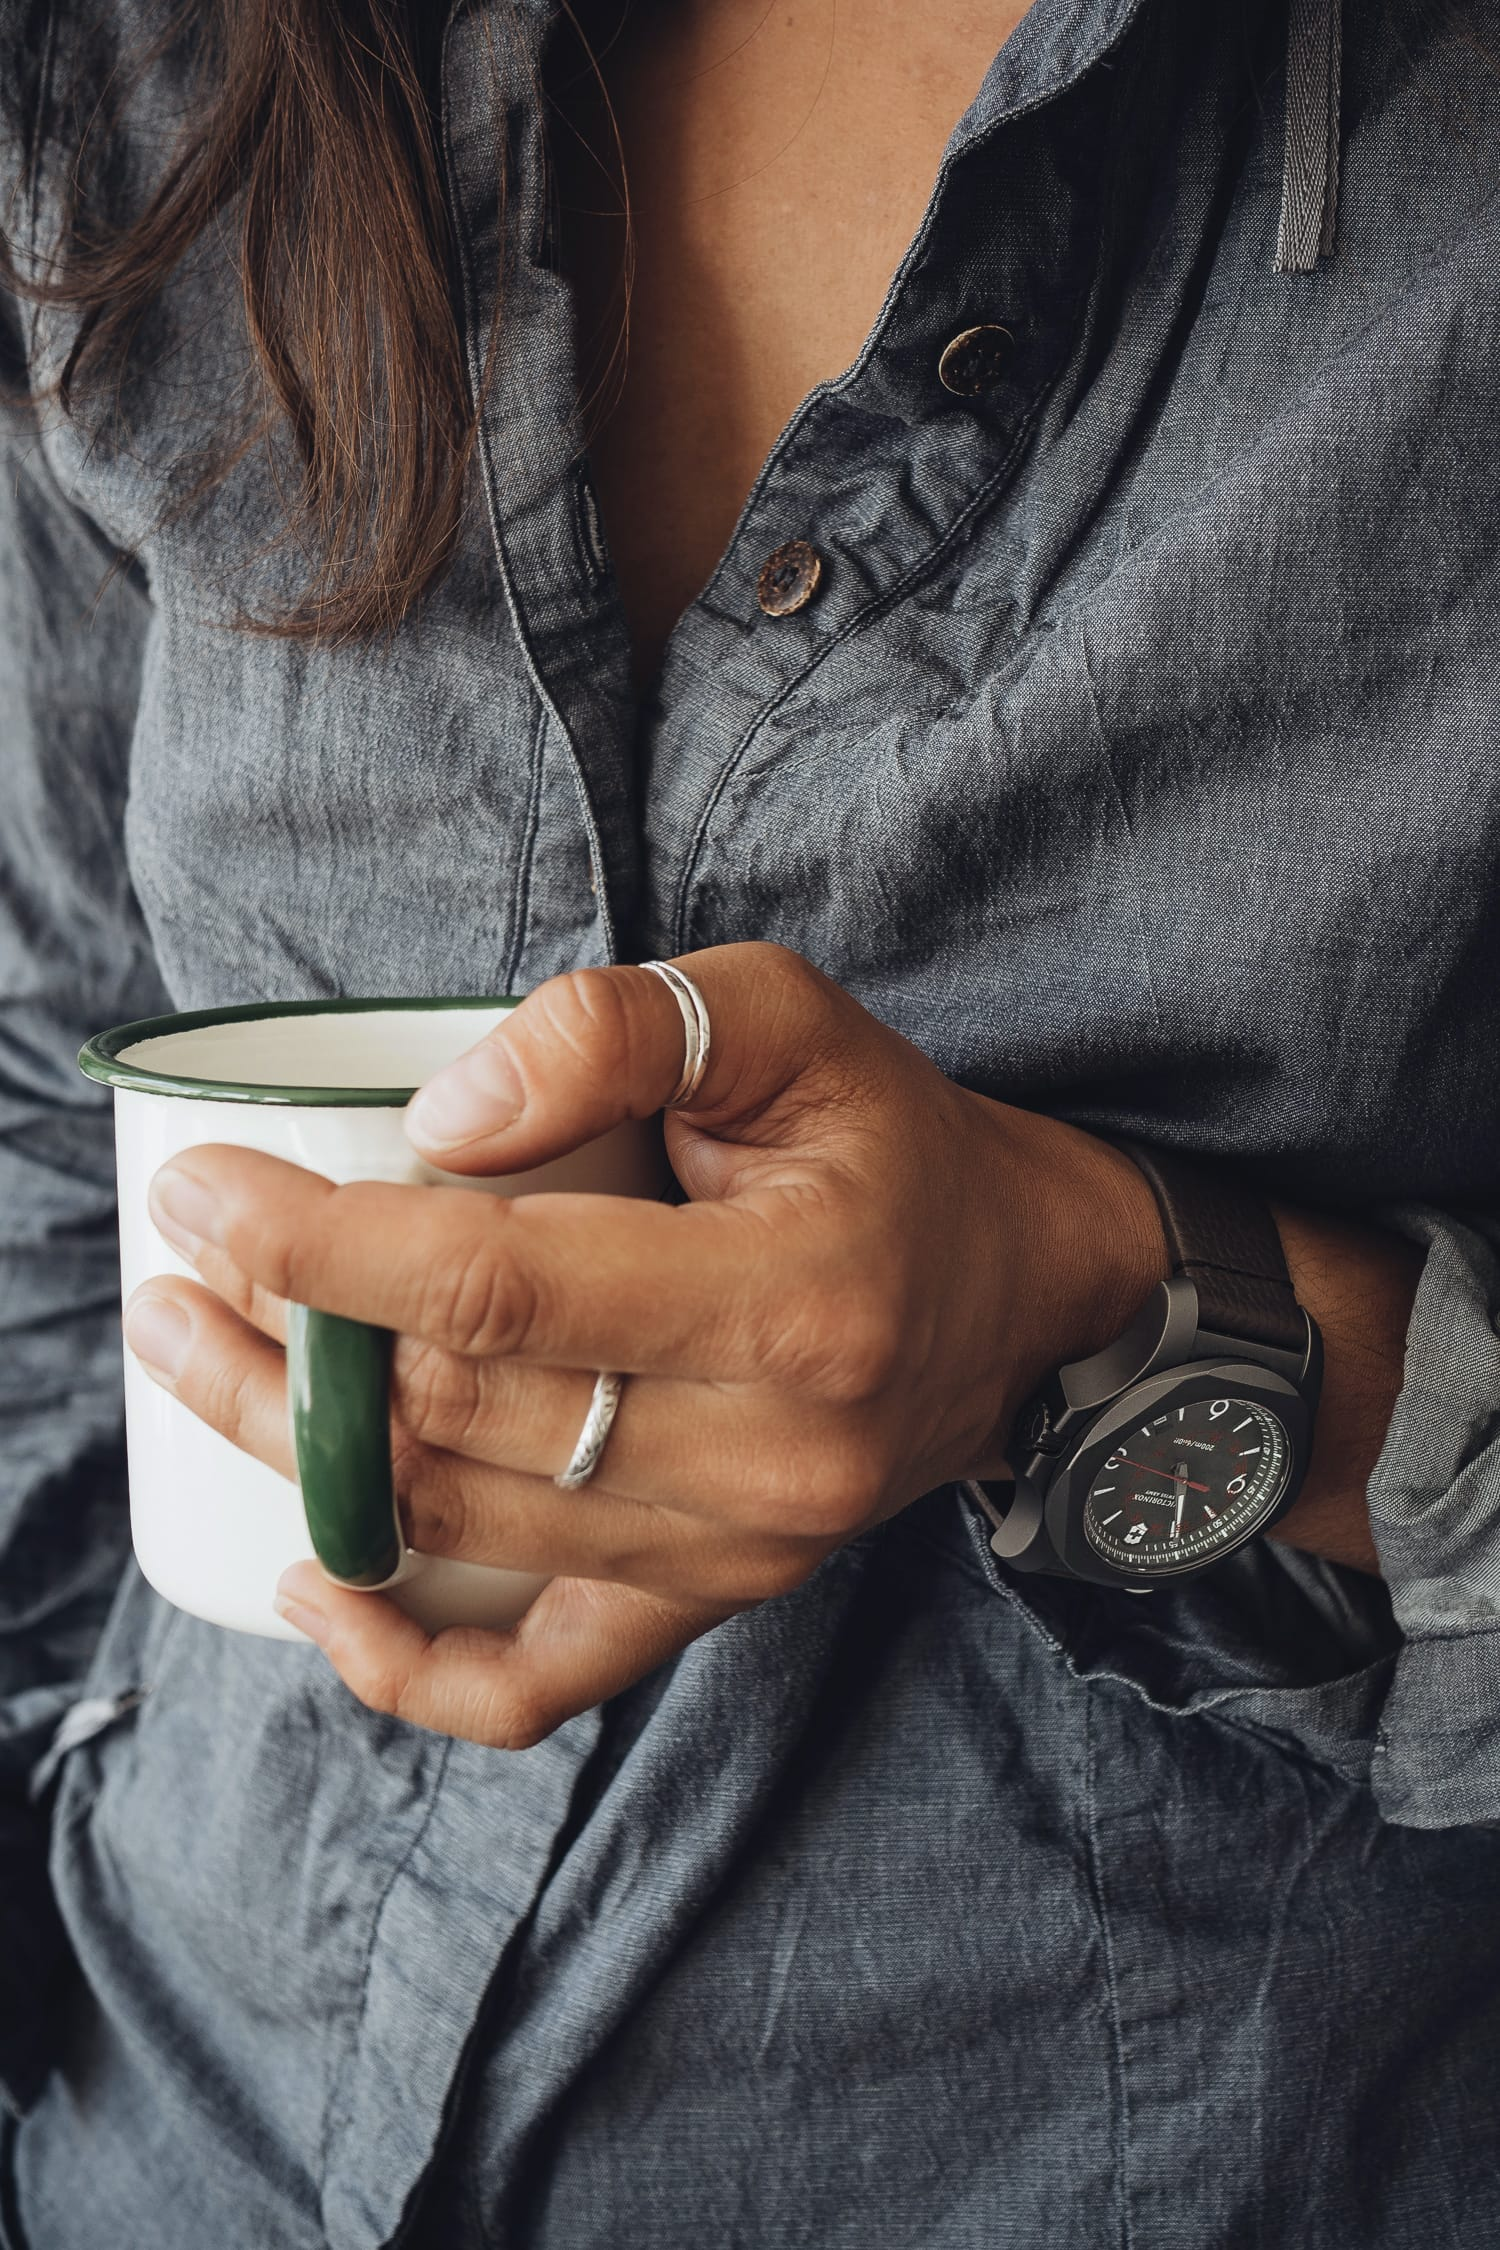 hand holding a coffee cup, Victorinox watch